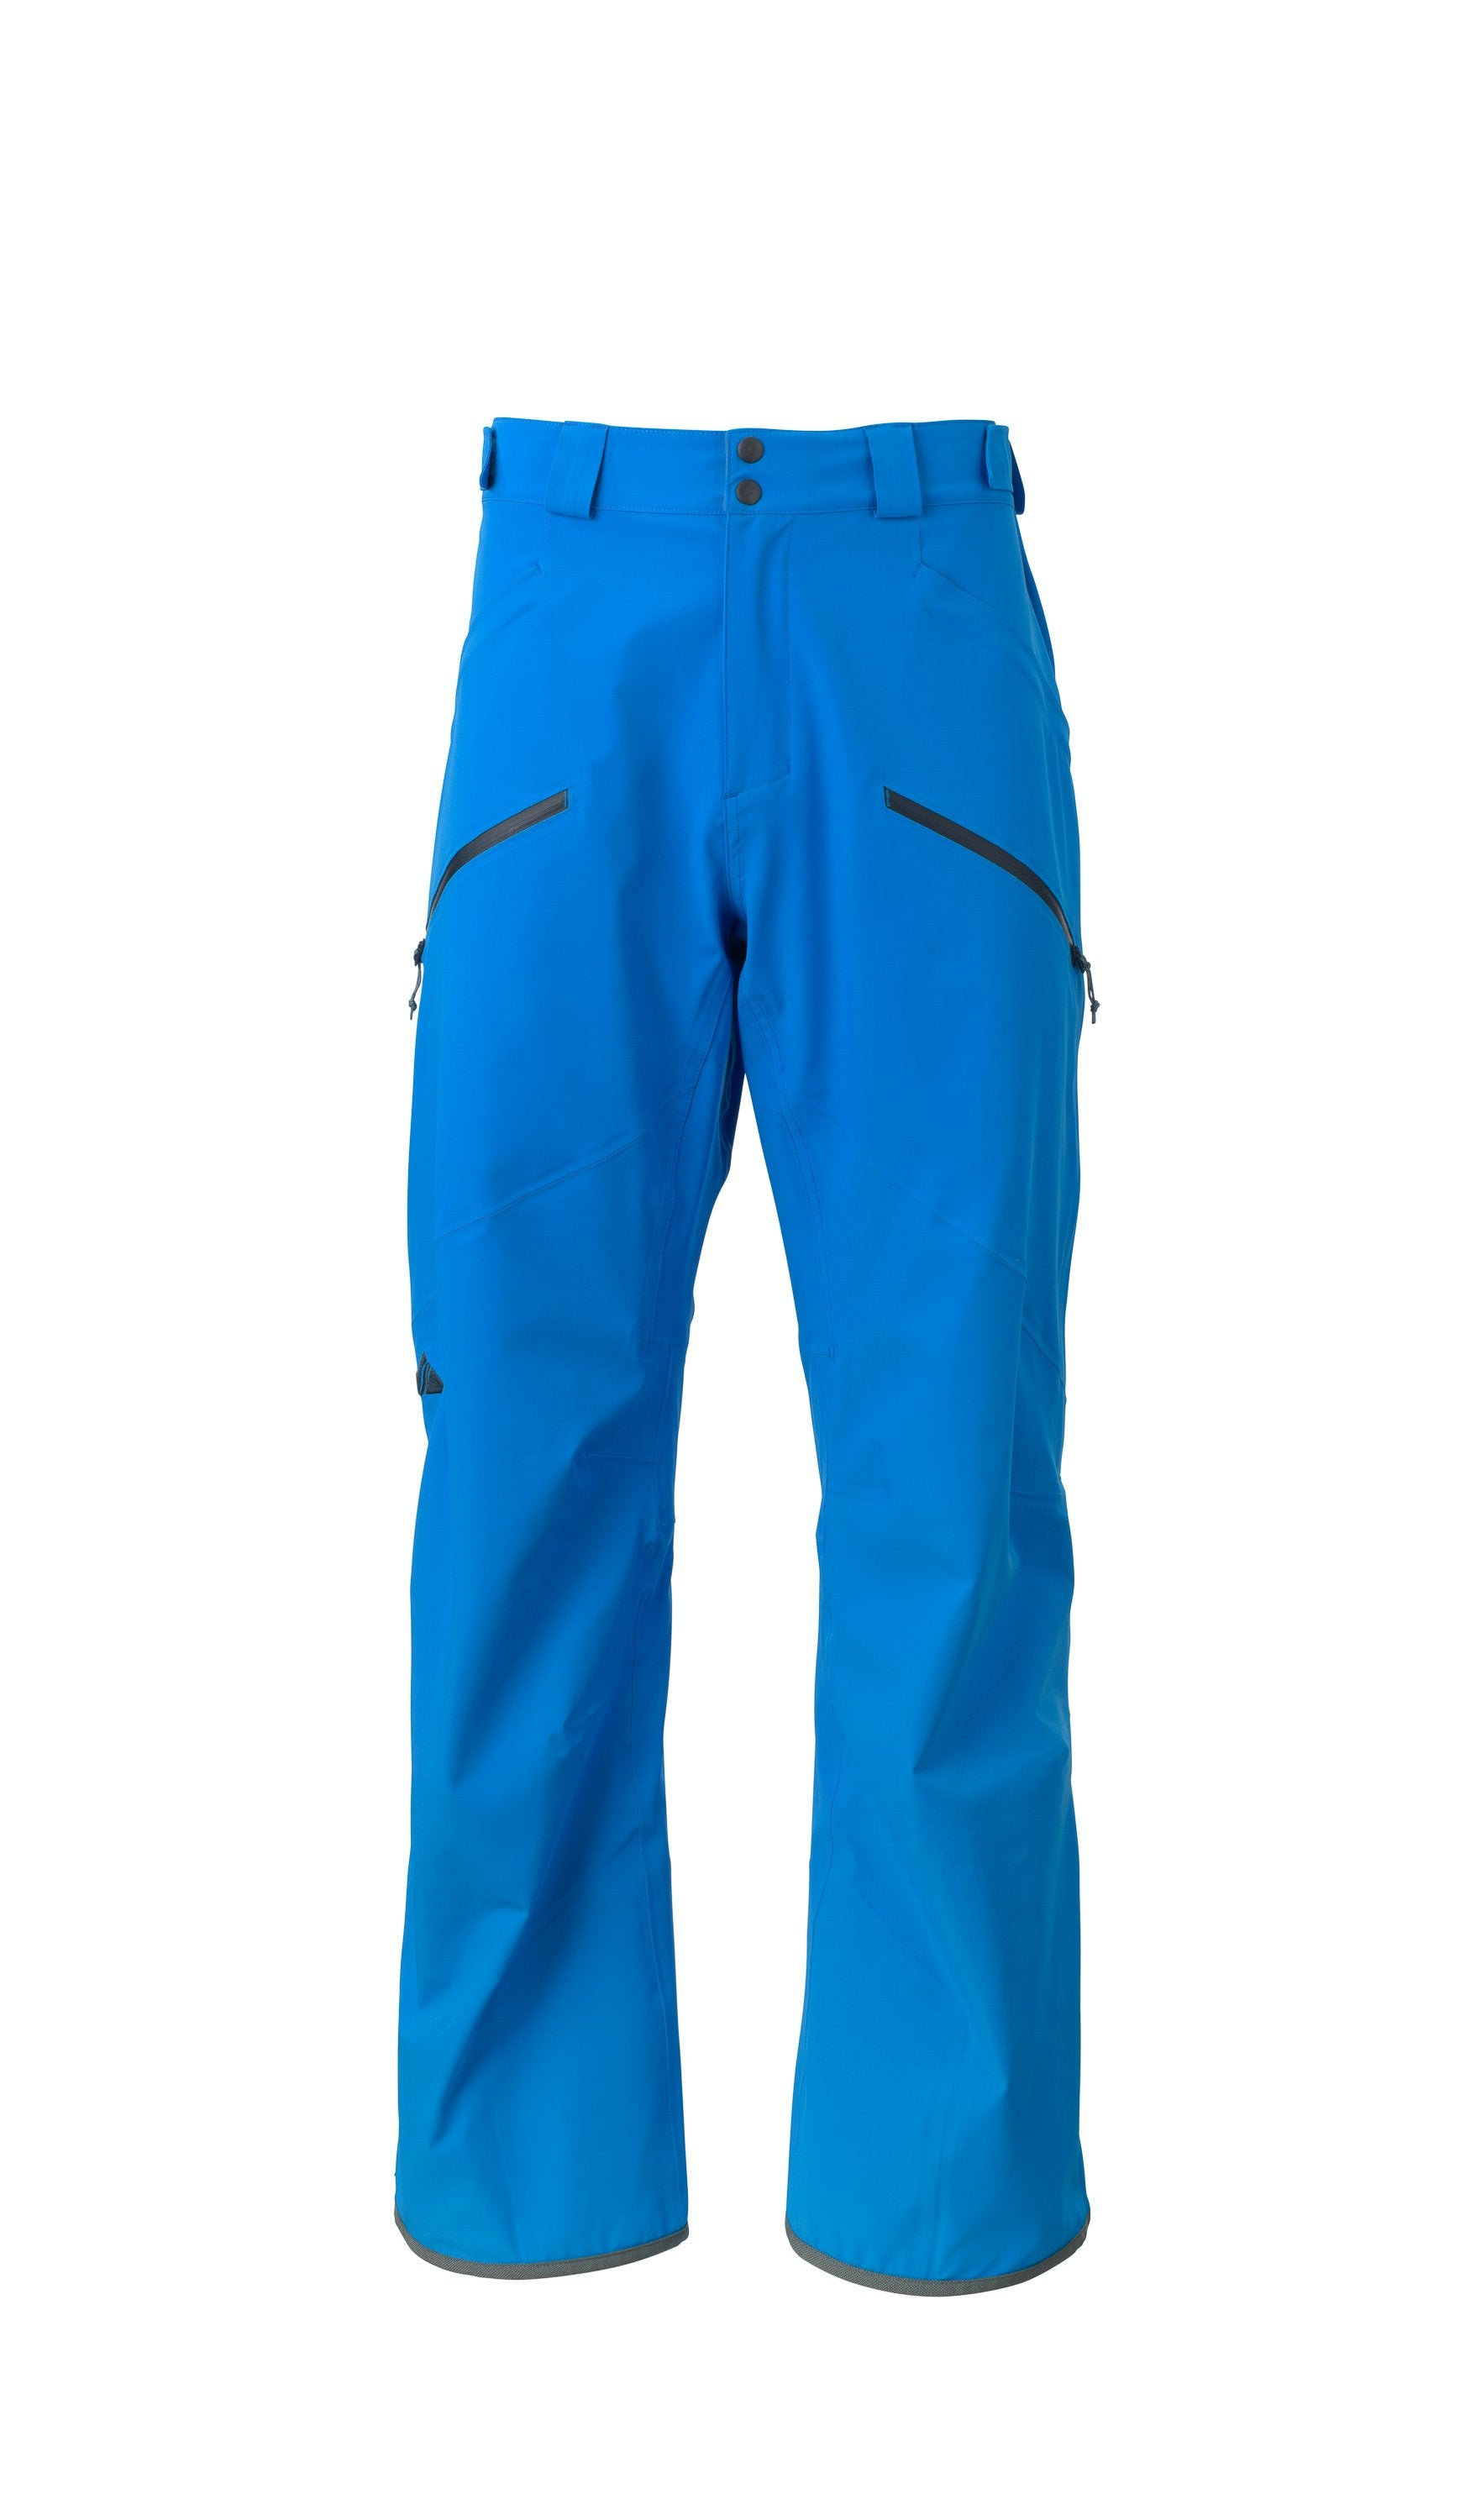 bright blue 2019 men's summit insulated skiing and snowboarding pant from strafe outerwear